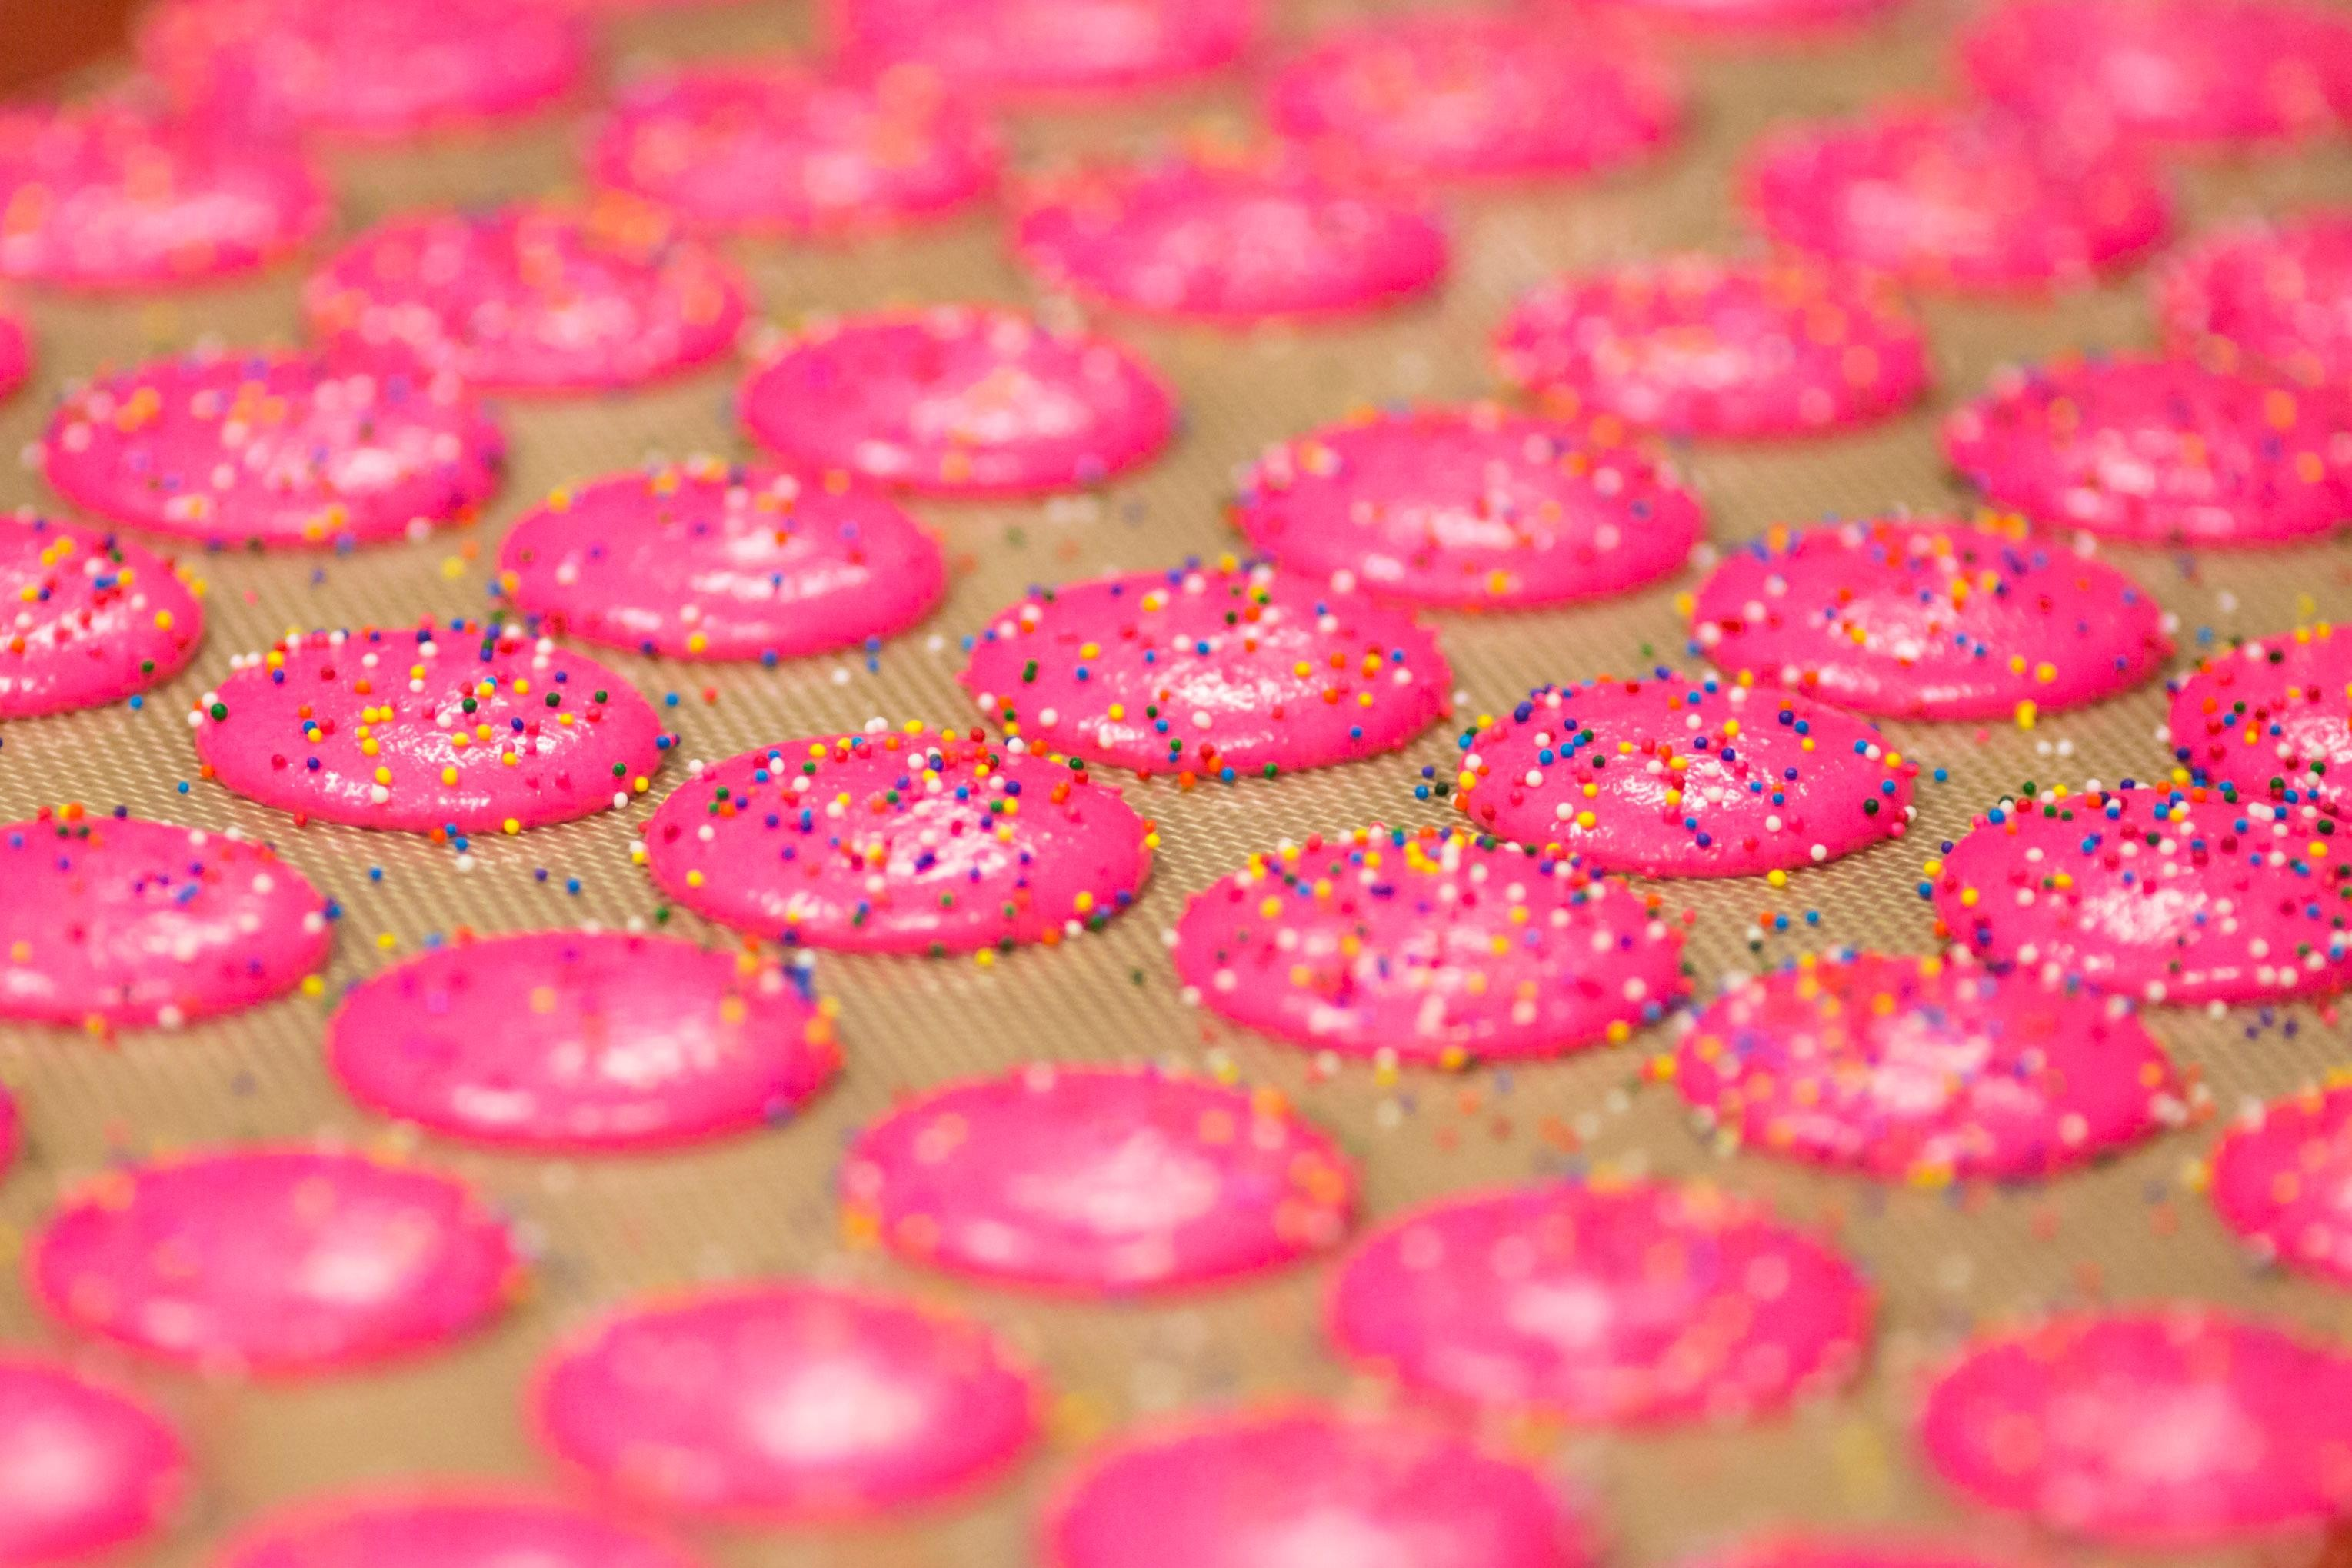 Remember Circus Animal cookies?! The bright pink and white little sprinkled-covered gems, of which you can eat and eat and eat forever? When we see these, we get instantly transported back to our childhood. And thanks to Trophy Cupcakes, we can enjoy these goodies in a WHOLE NEW WAY. That's right, Circus Animal macarons! We visited Trophy's bakery to see the making of these sweet treats, now available at all Trophy locations. And yes, we can confirm that they taste like the original cookie. More info at trophycupcakes.com. (Image: Sy Bean / Seattle Refined)